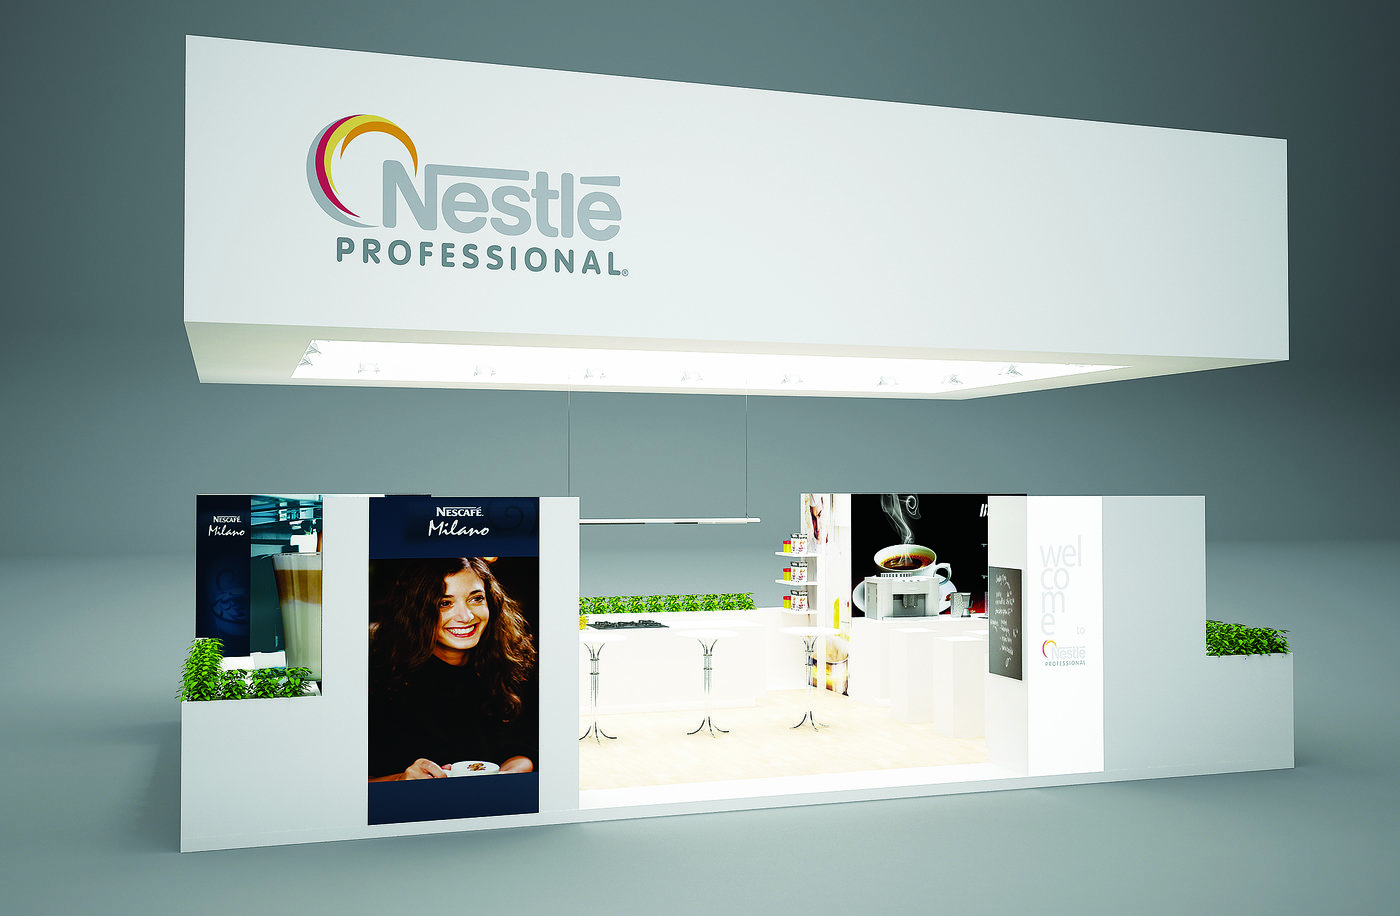 Gm Exhibition Stand Design : Th international exhibition of household appliances stand design